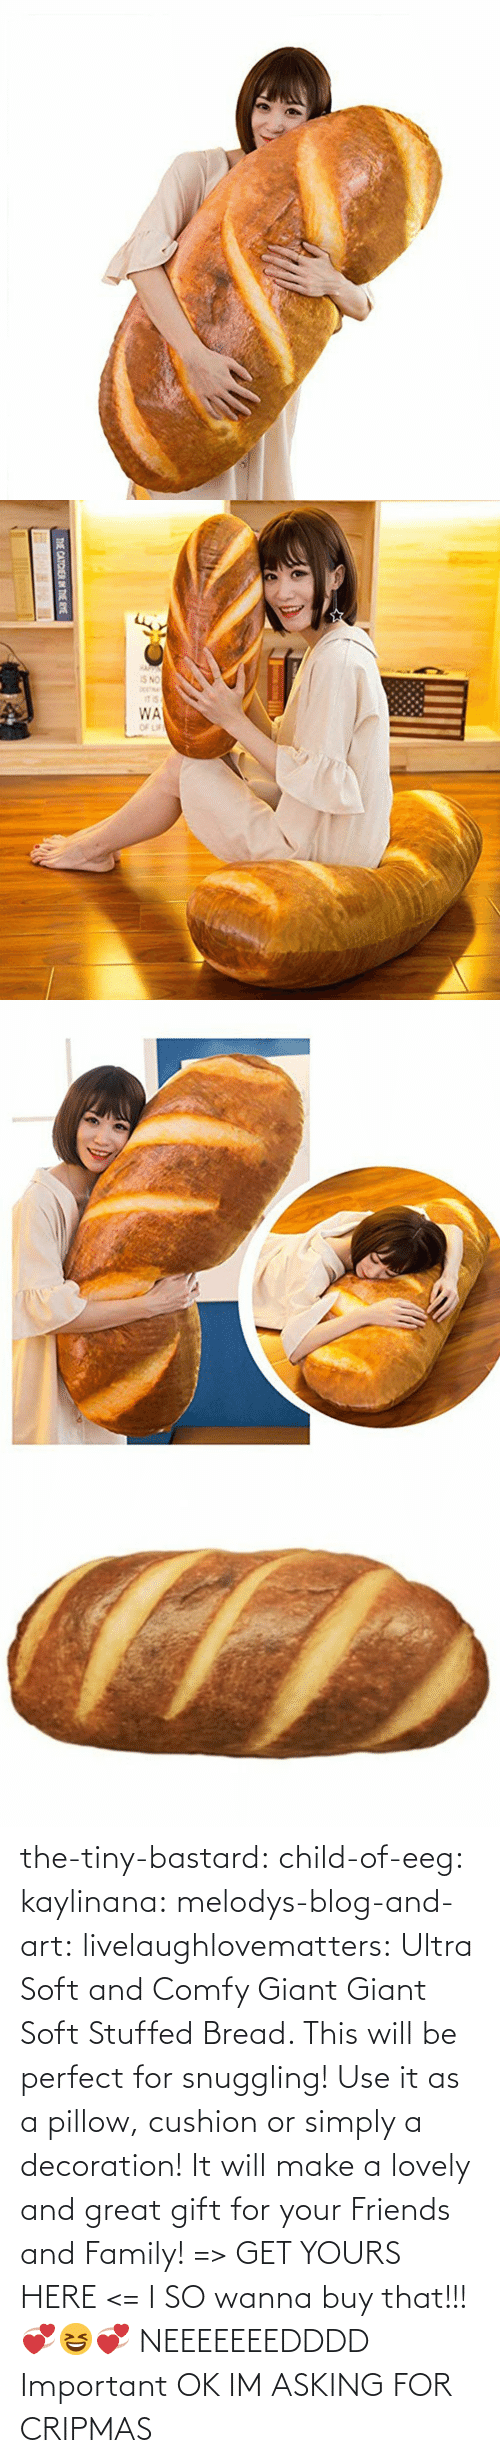 stuffed: THE CATCHER IN THE RYE the-tiny-bastard:  child-of-eeg:  kaylinana: melodys-blog-and-art:  livelaughlovematters:  Ultra Soft and Comfy Giant Giant Soft Stuffed Bread. This will be perfect for snuggling! Use it as a pillow, cushion or simply a decoration! It will make a lovely and great gift for your Friends and Family! => GET YOURS HERE <=   I SO wanna buy that!!! 💞😆💞   NEEEEEEEDDDD   Important  OK IM ASKING FOR CRIPMAS